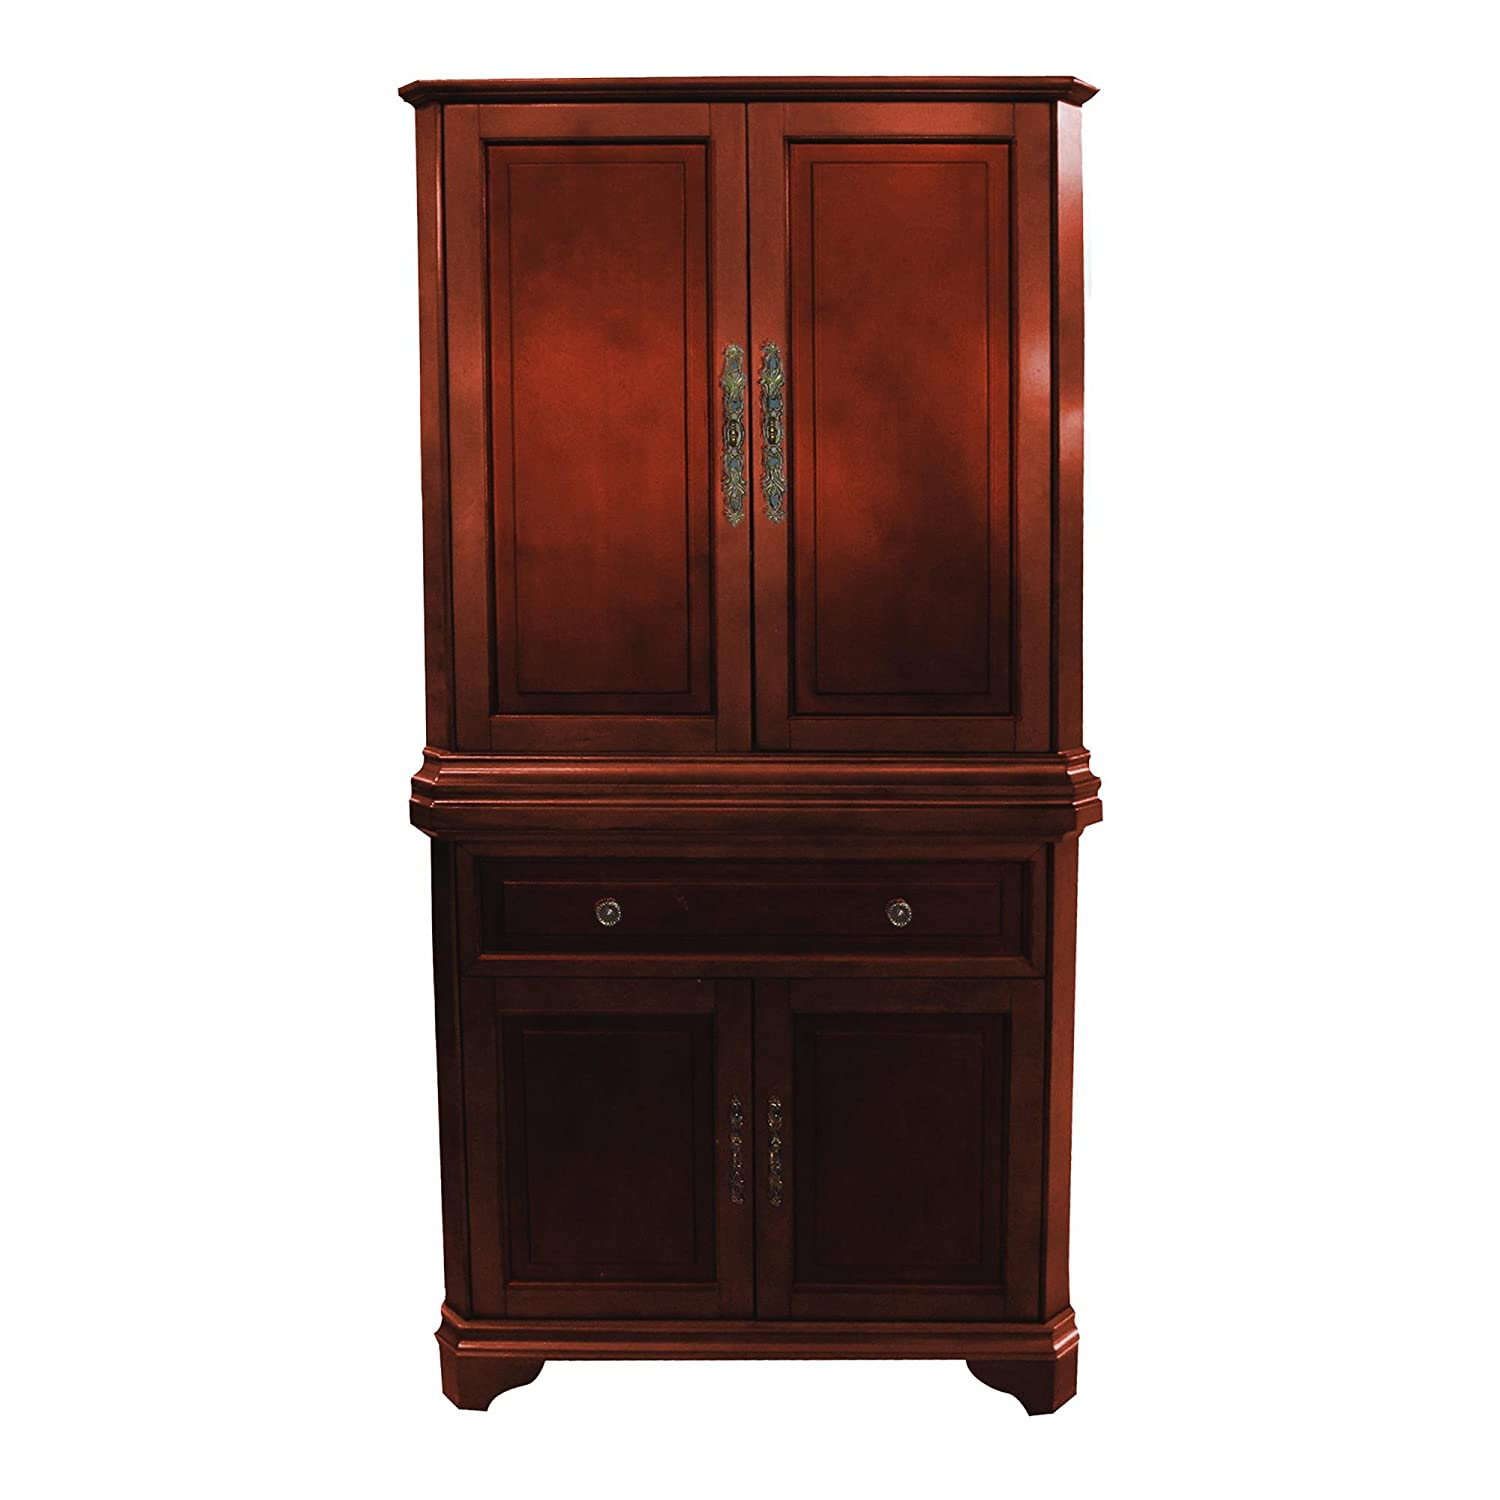 Yosemite TAMARACK36DA8 Double Armoire in Brown Finish - Brown Cabinet